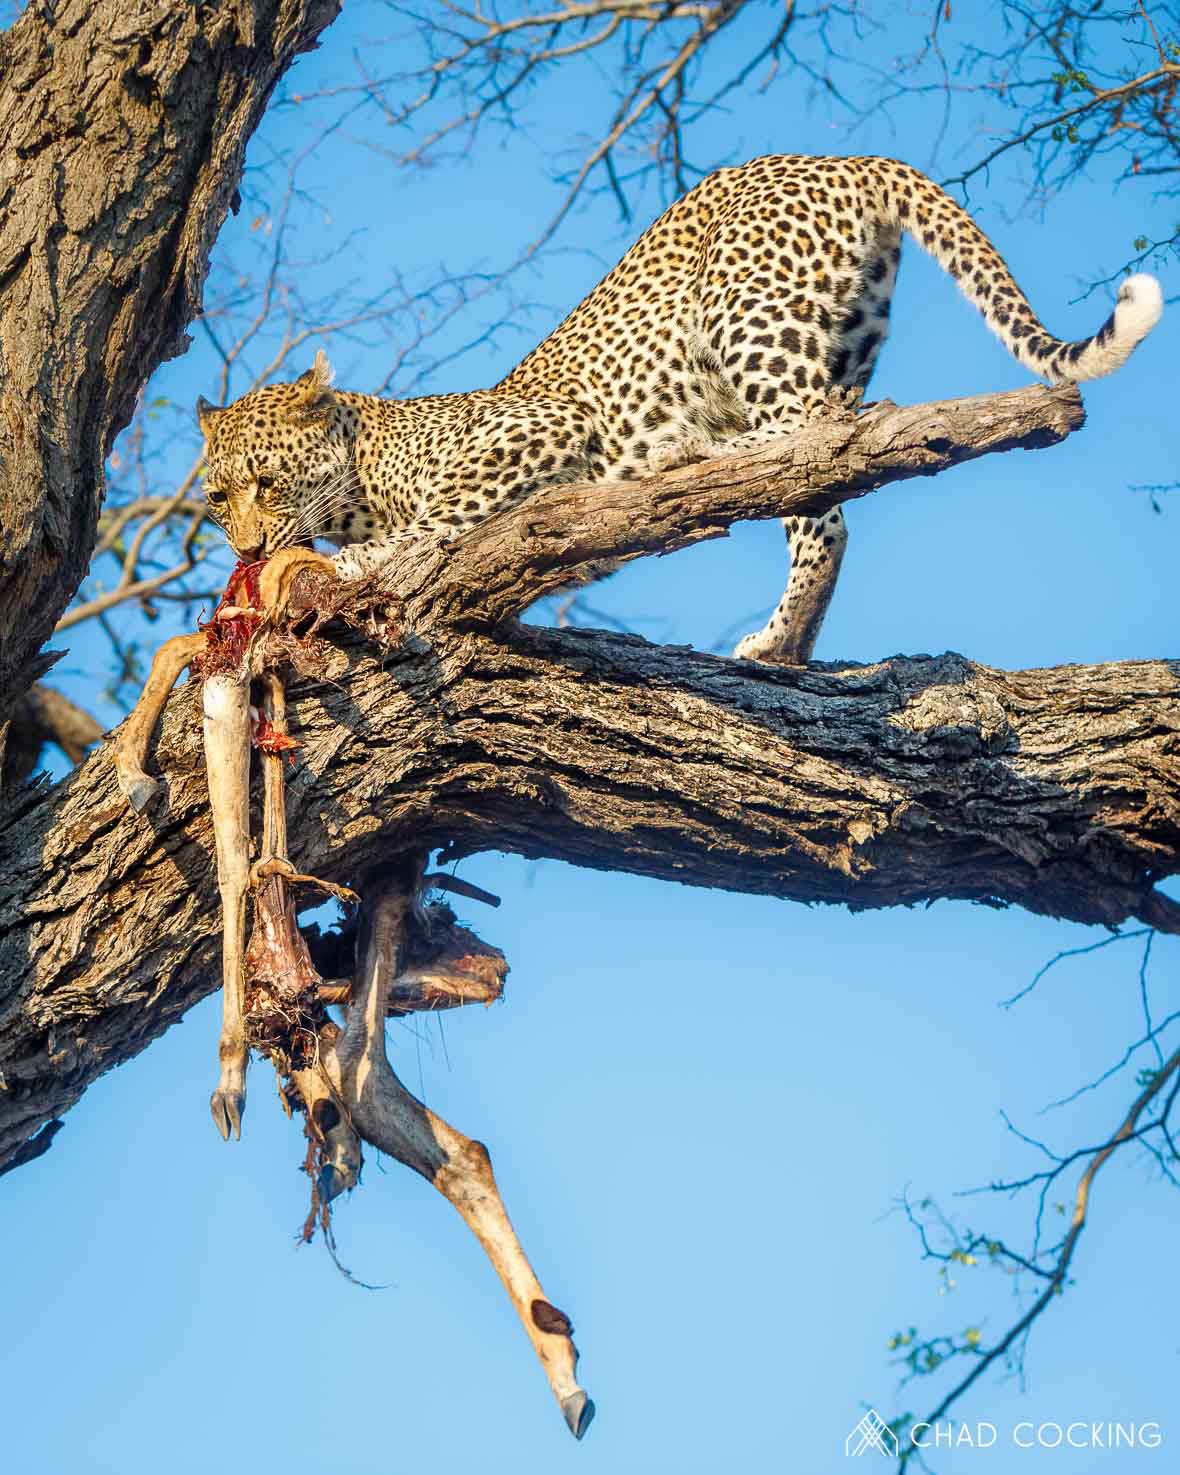 Tanda Tula - Nyeleti feeding on an impala in the Greater Kruger, South Africa